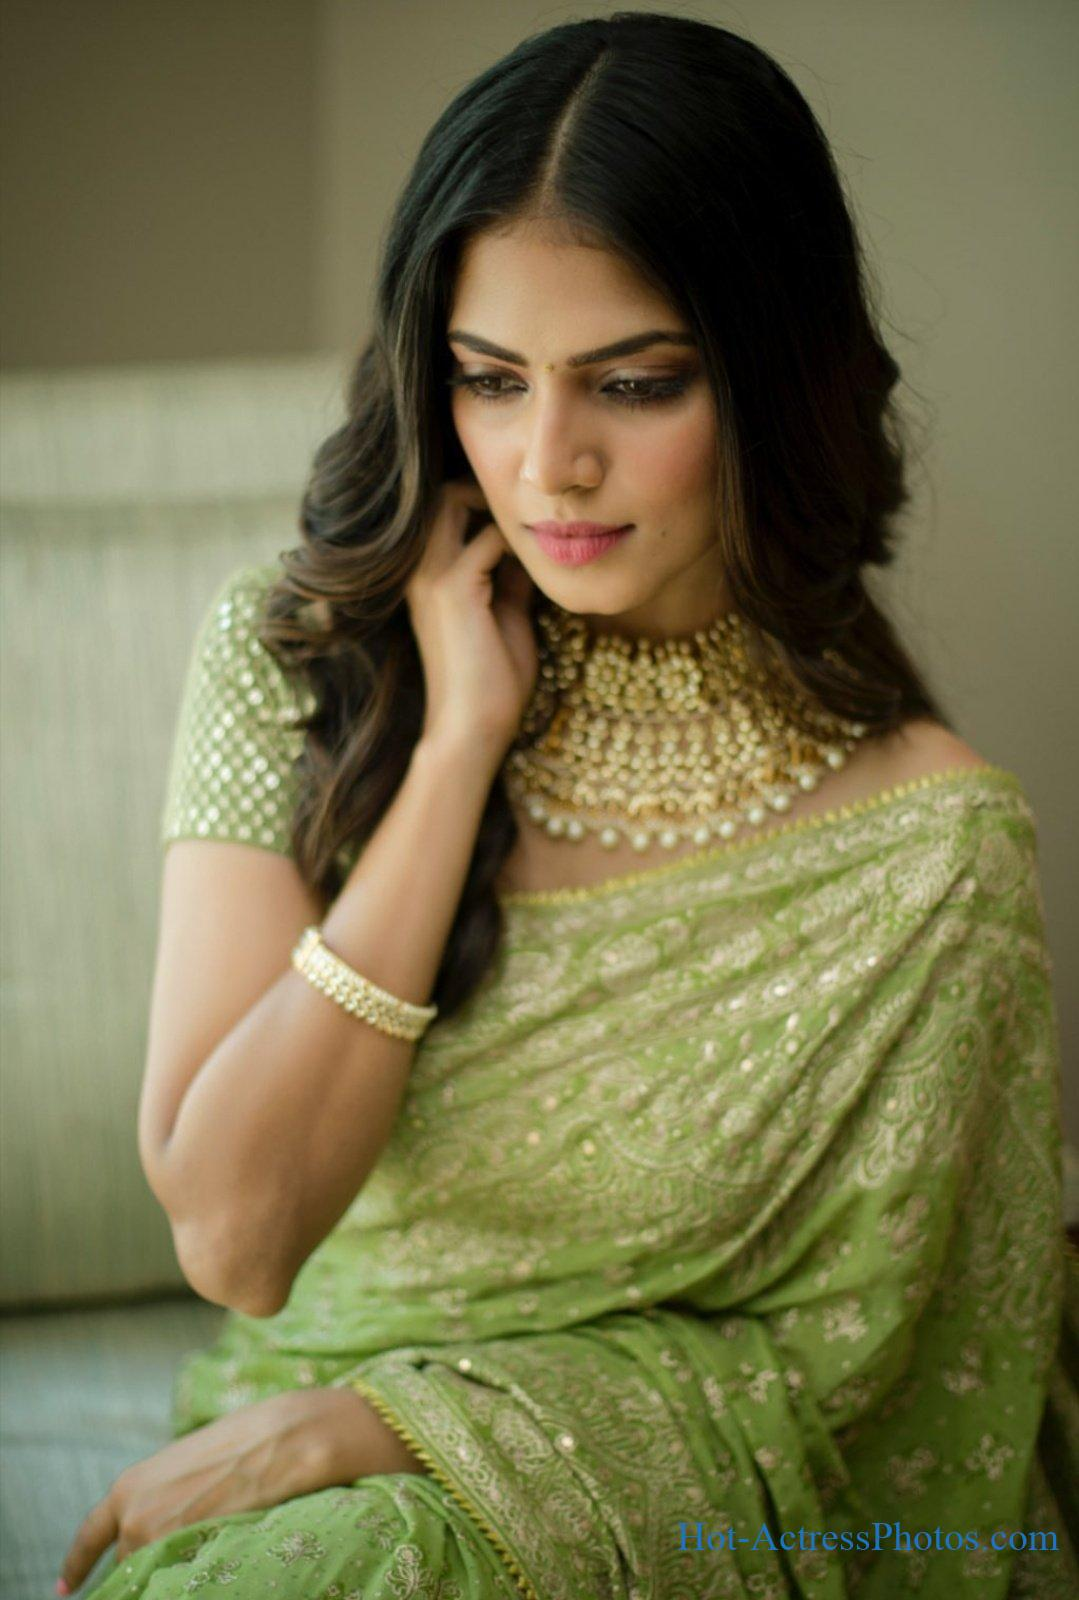 Malavika Mohanan Hot Photos In Green Saree At Thalapathy 64 Movie Pooja